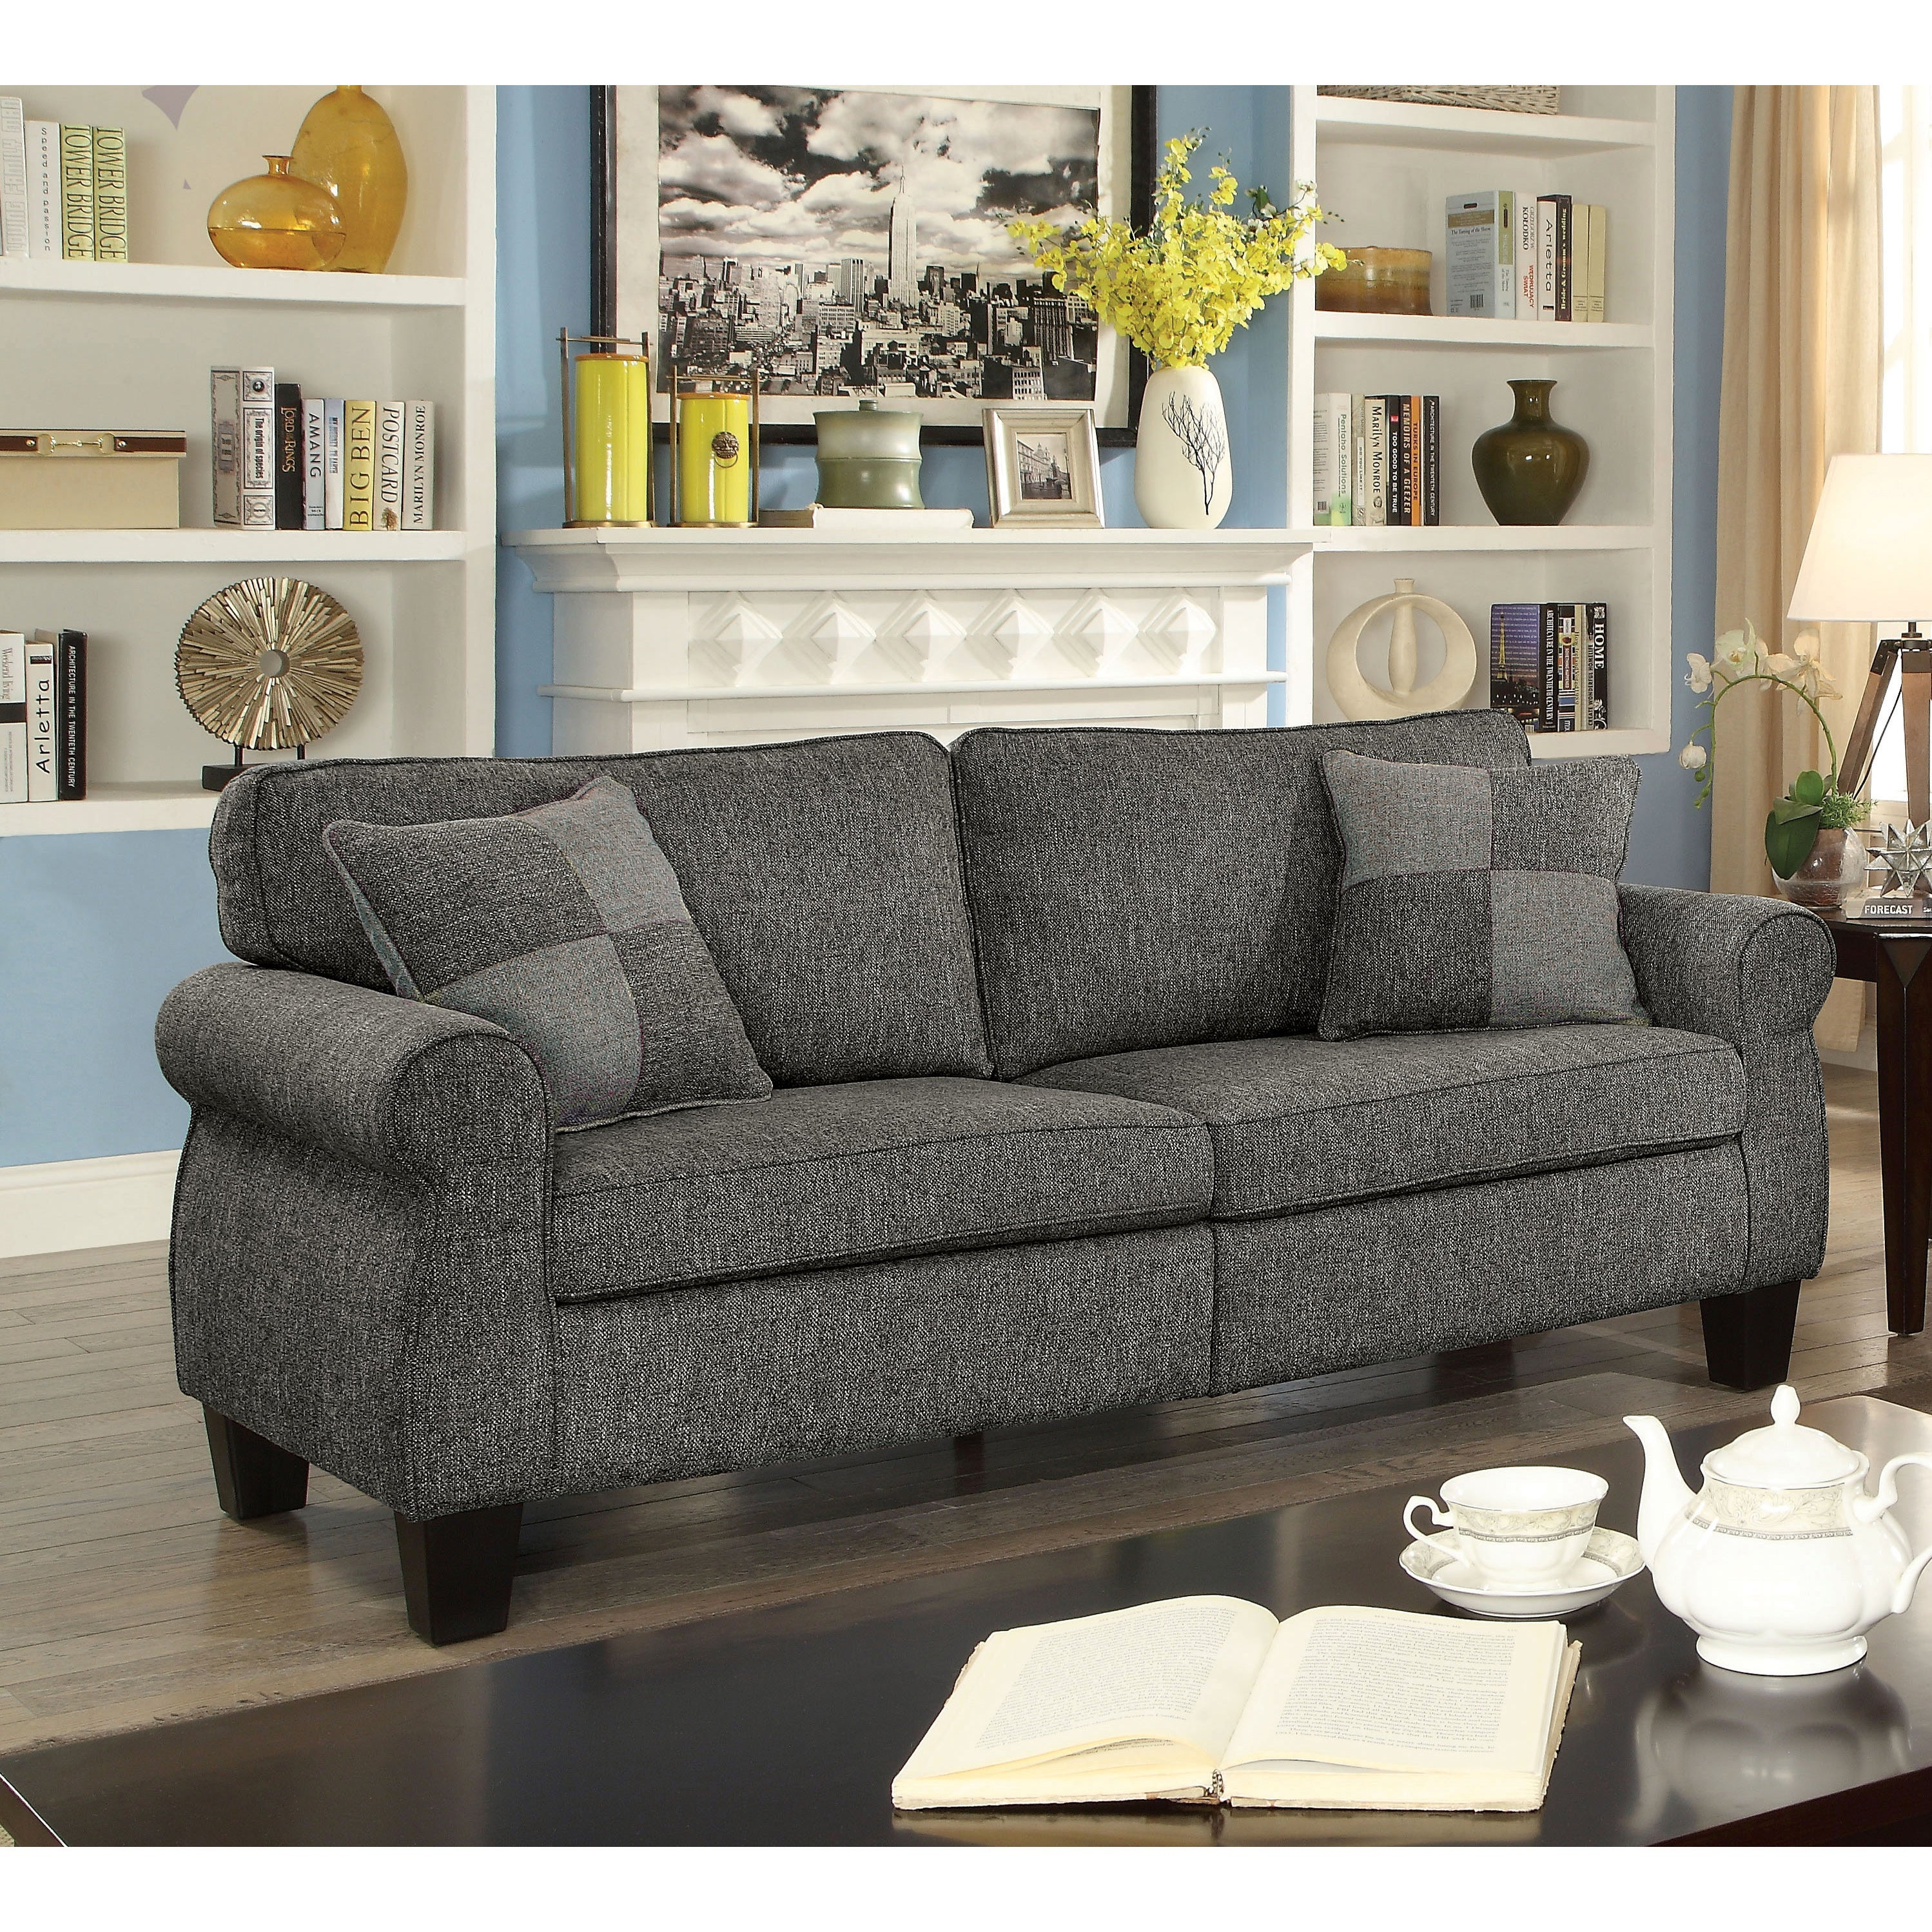 Furniture Of America Herena Transitional Linen Like Sofa (2 Options  Available)